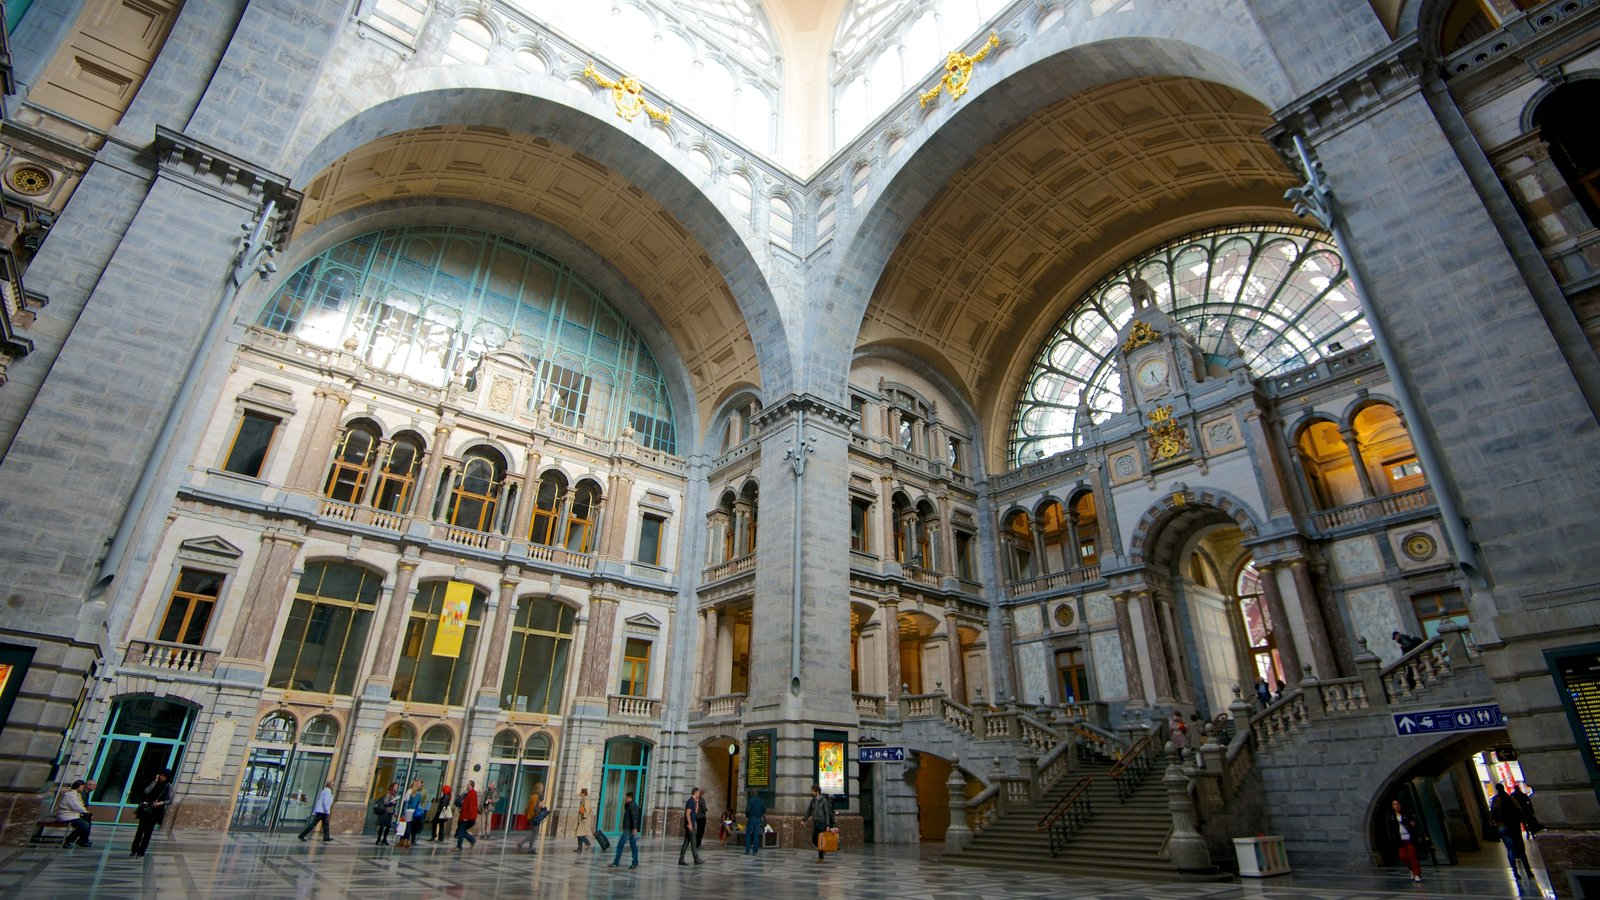 Antwerp Central Station which includes railway items, heritage architecture and interior views